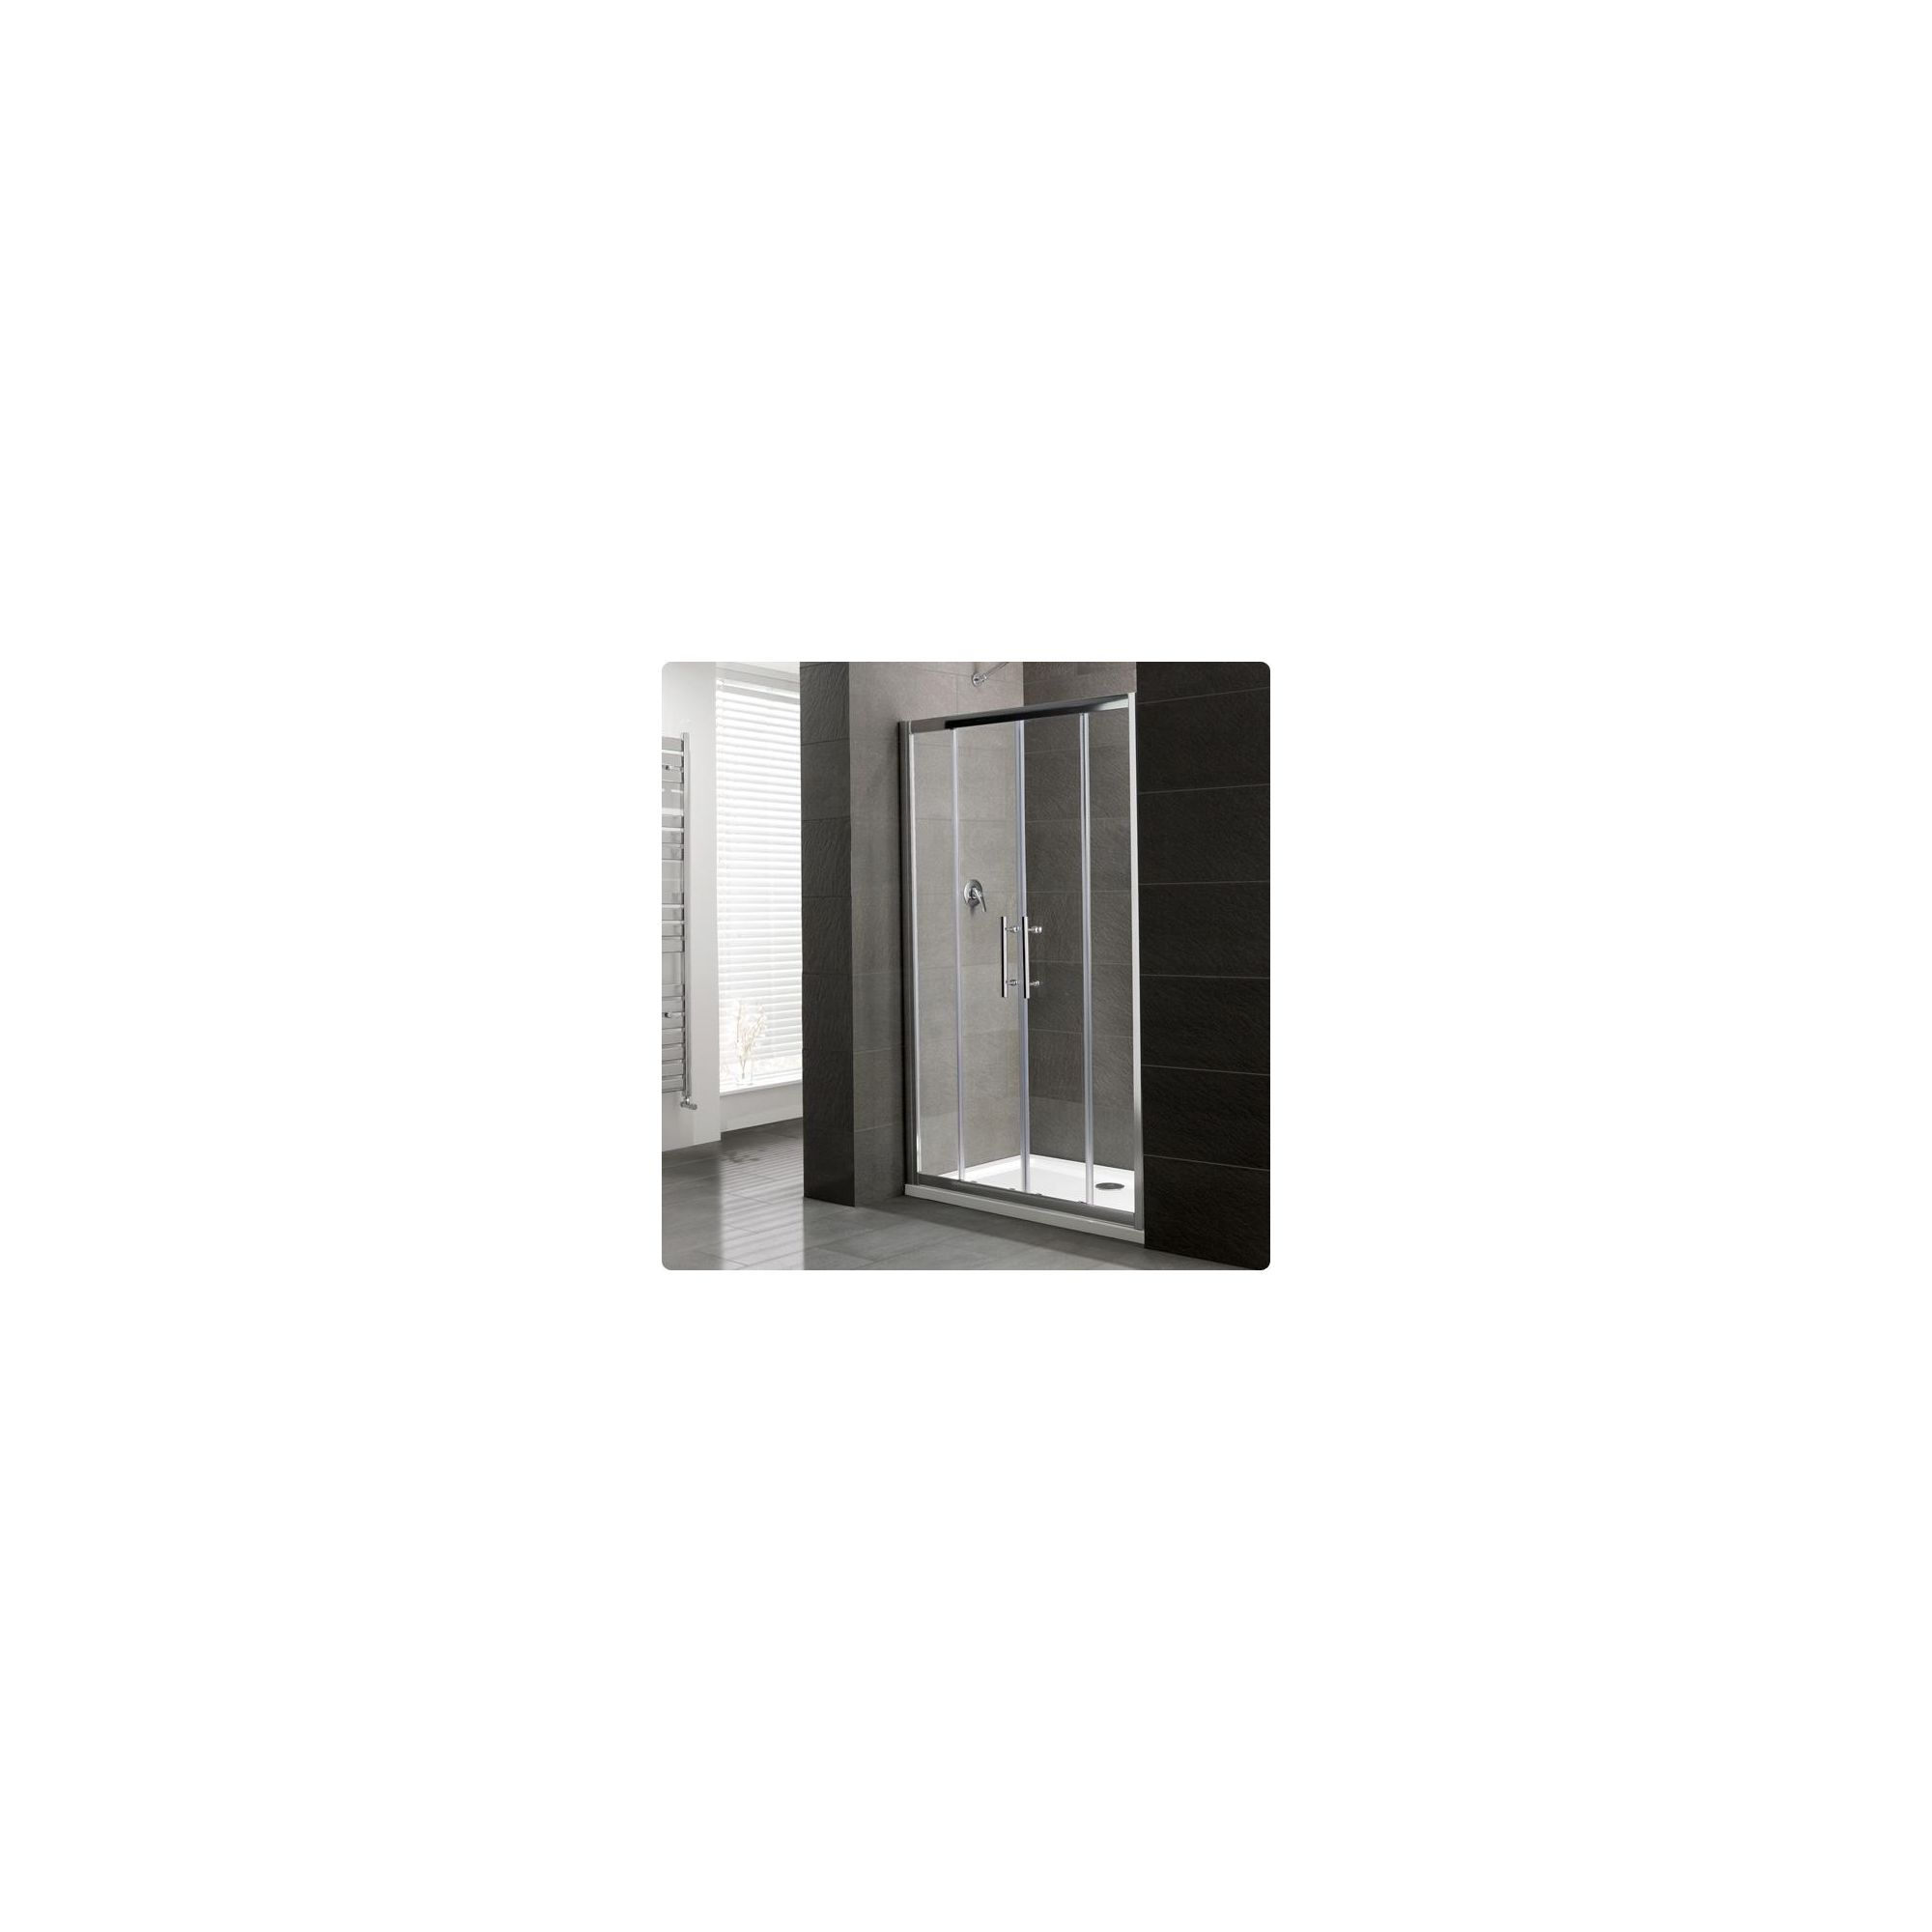 Duchy Select Silver Double Sliding Door Shower Enclosure, 1500mm x 760mm, Standard Tray, 6mm Glass at Tesco Direct